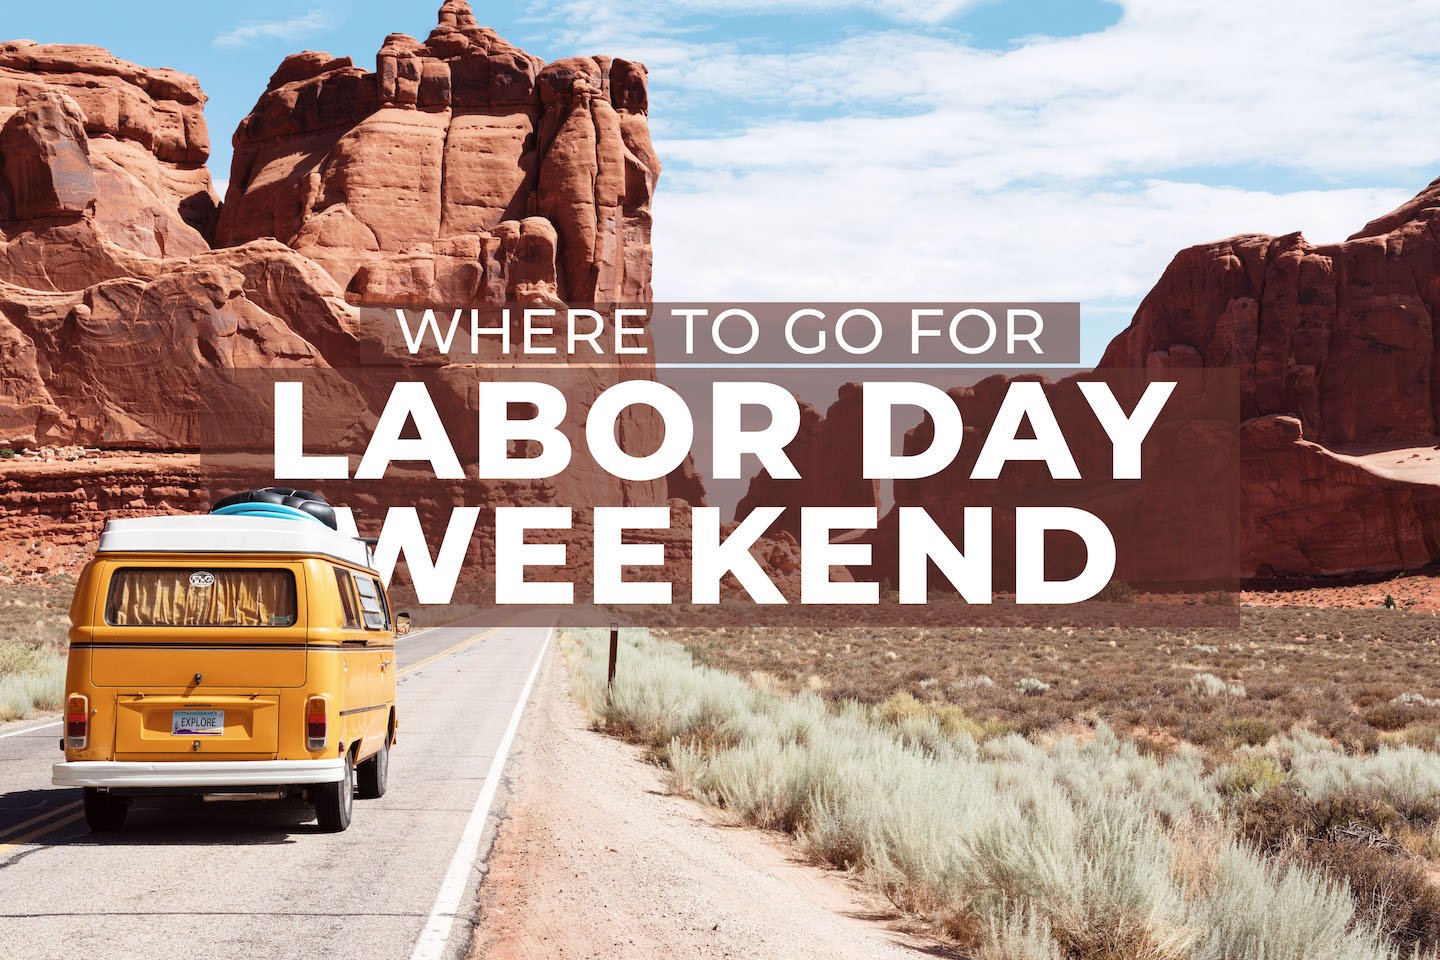 Where to Go For Labor Day Weekend